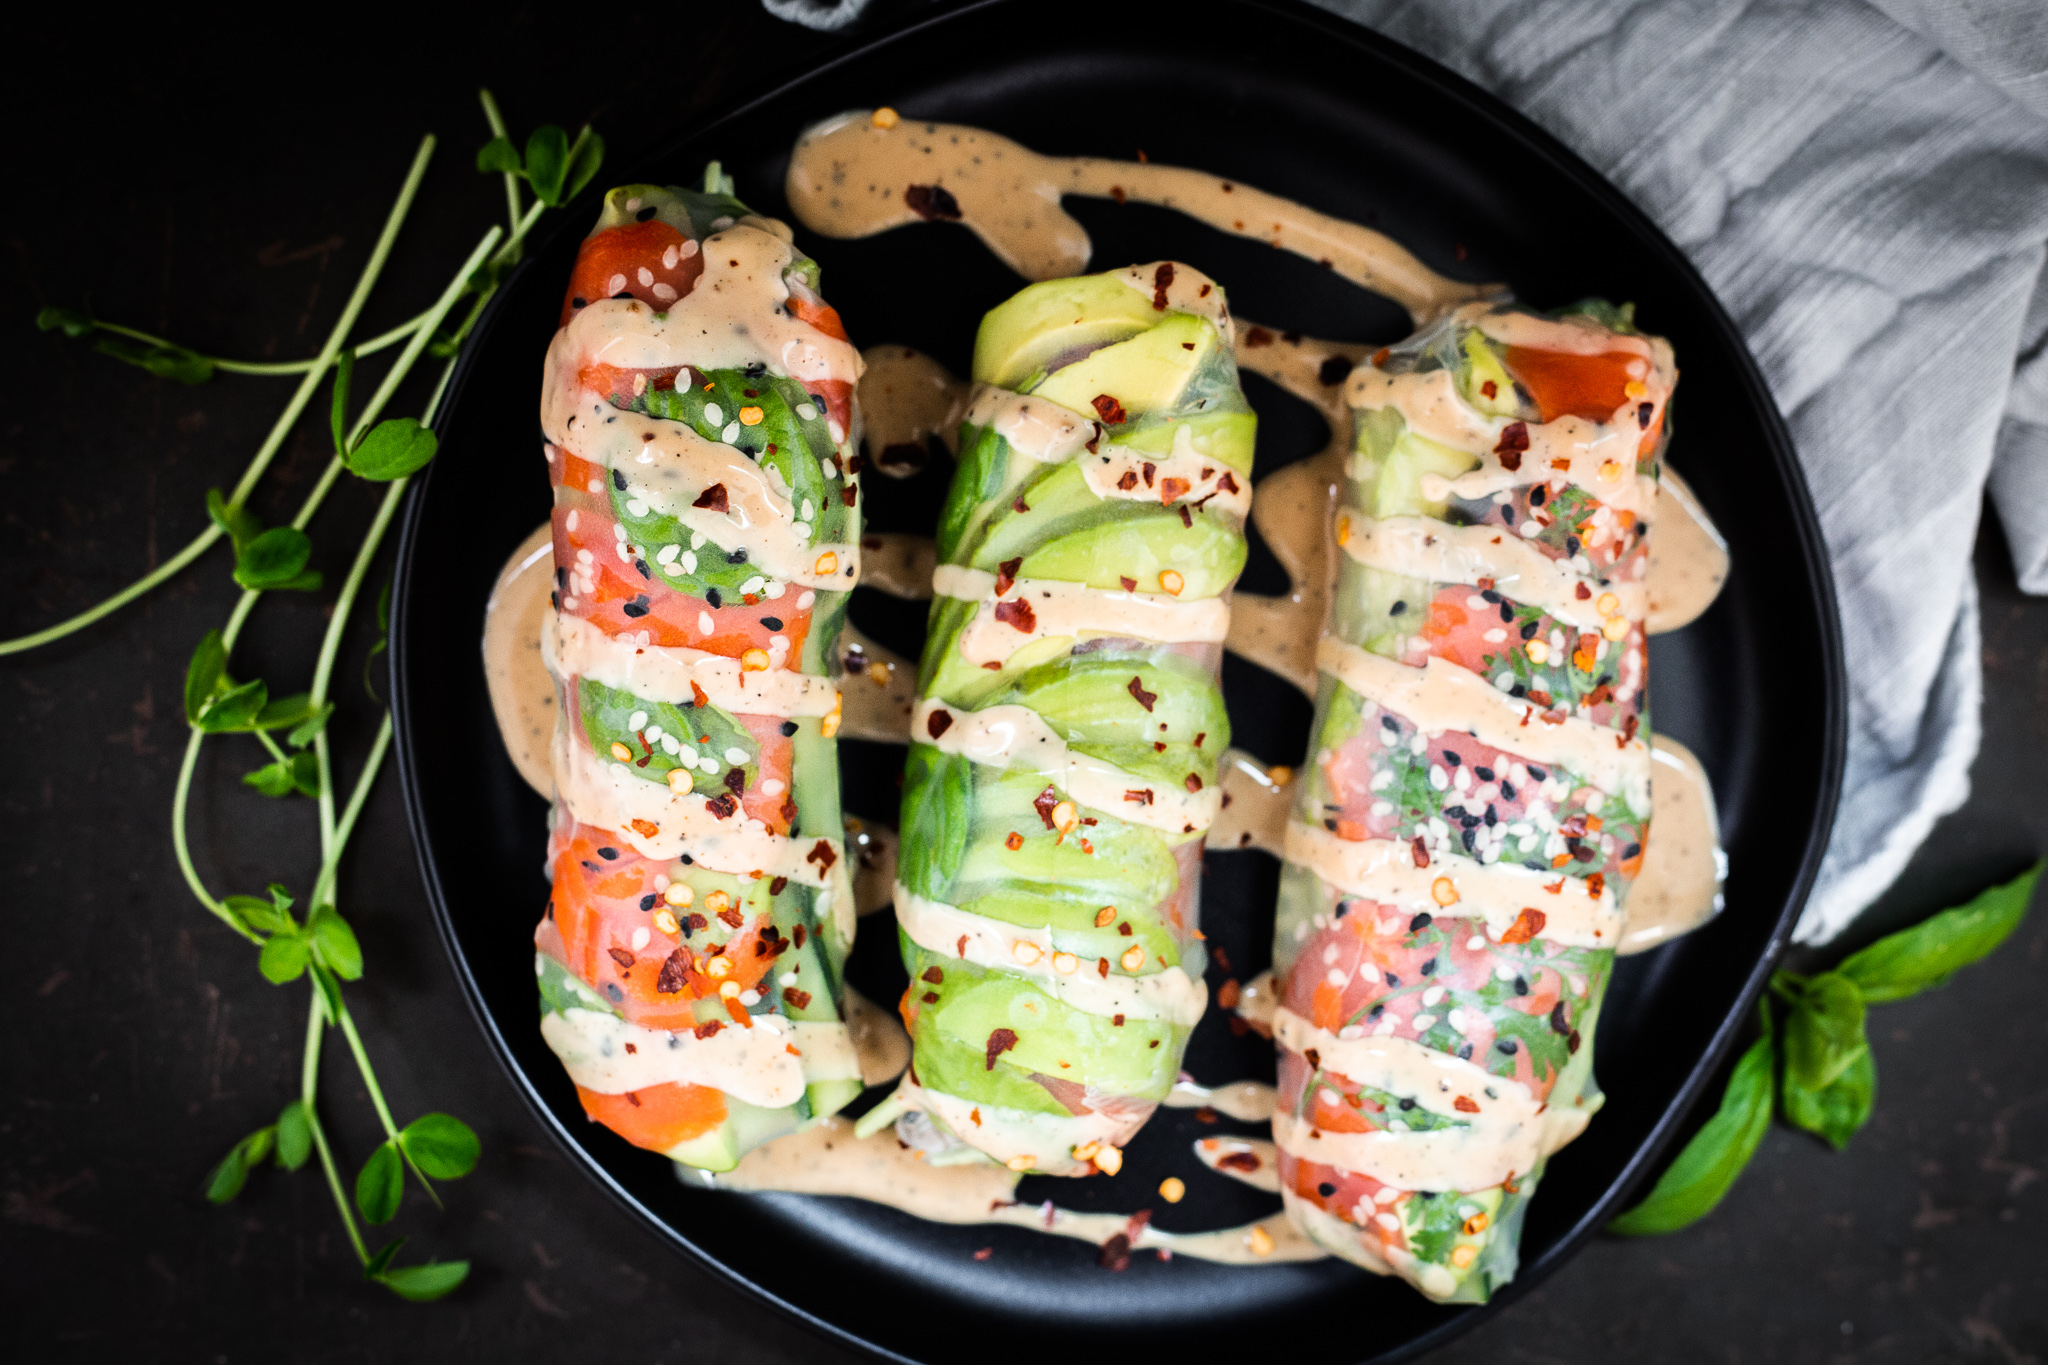 Smoked Salmon Summer Rolls/ Spring Rolls With Sesame Dipping Sauce